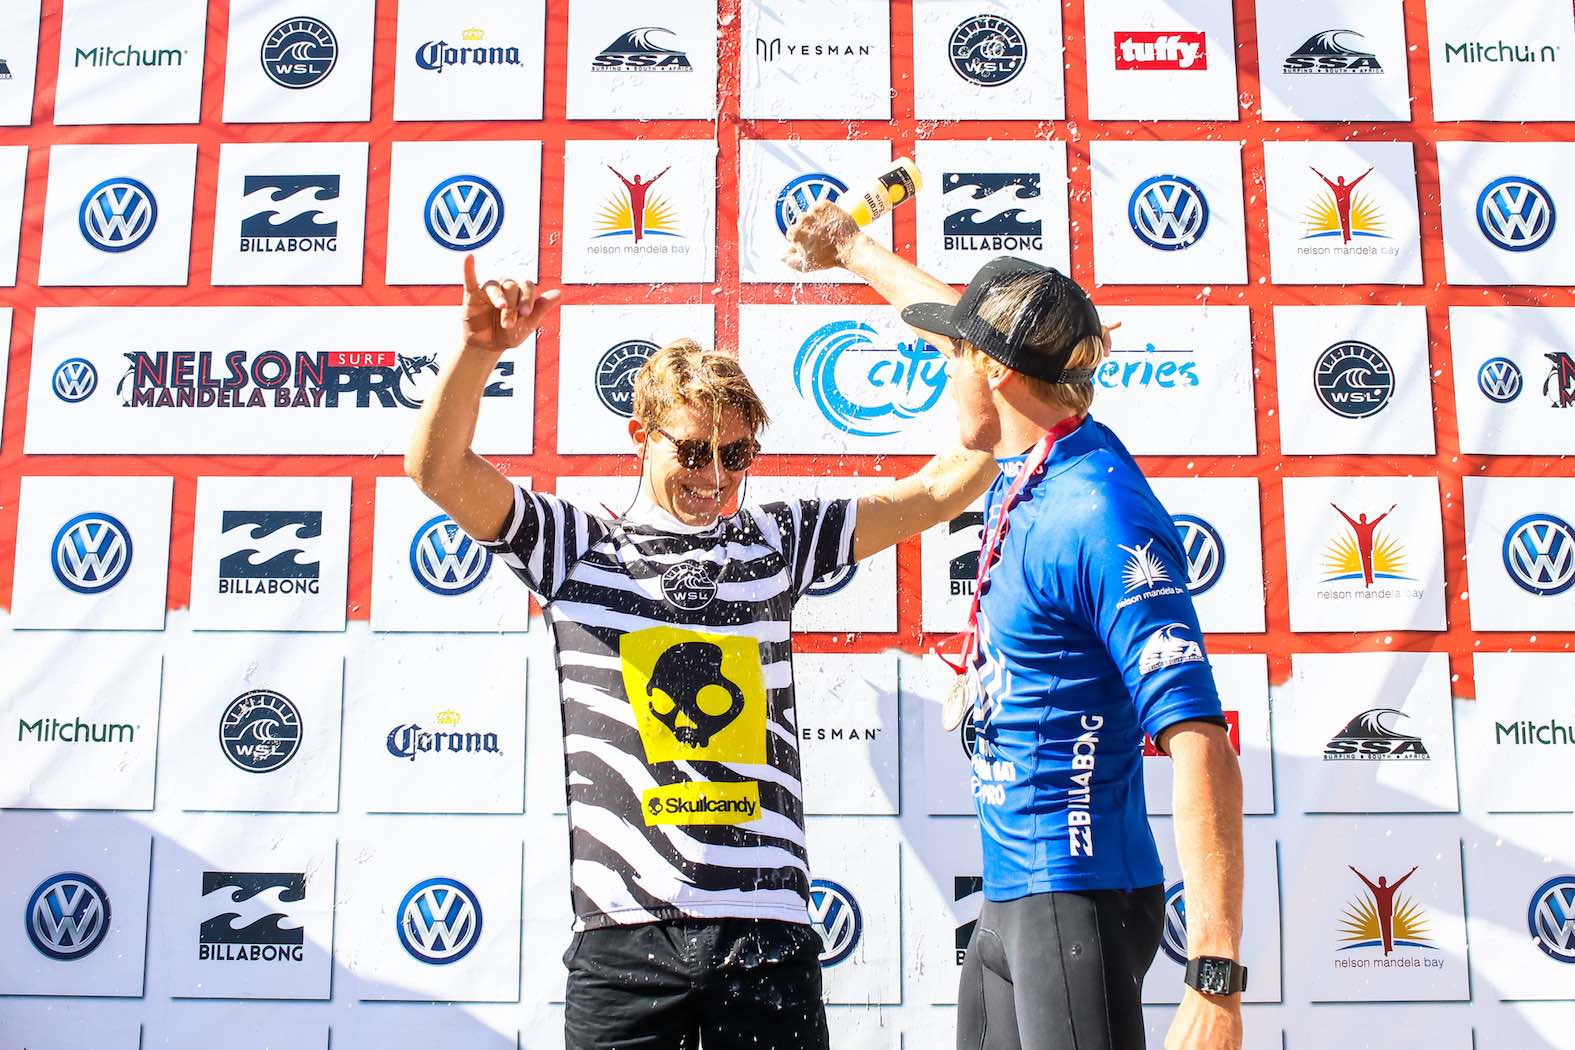 Volkswagen Nelson Mandela Bay Surf Pro Mens Final podium